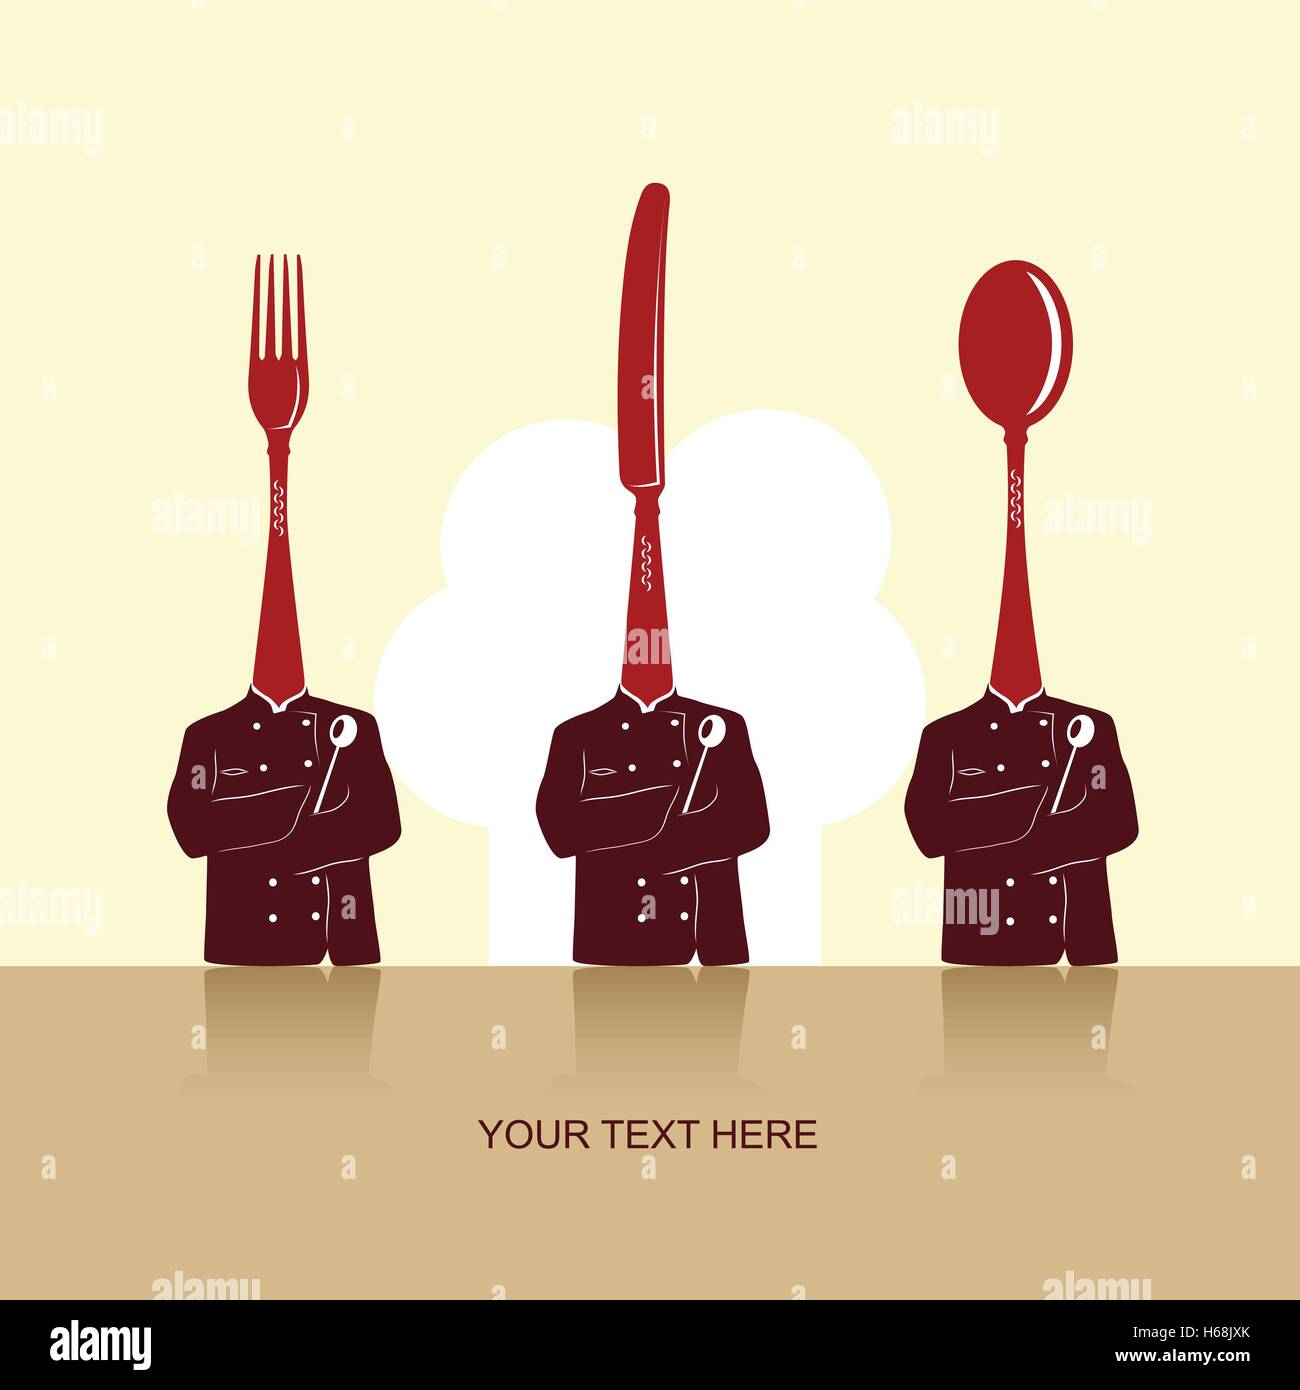 Culinary vector background for cards, menus, invitations